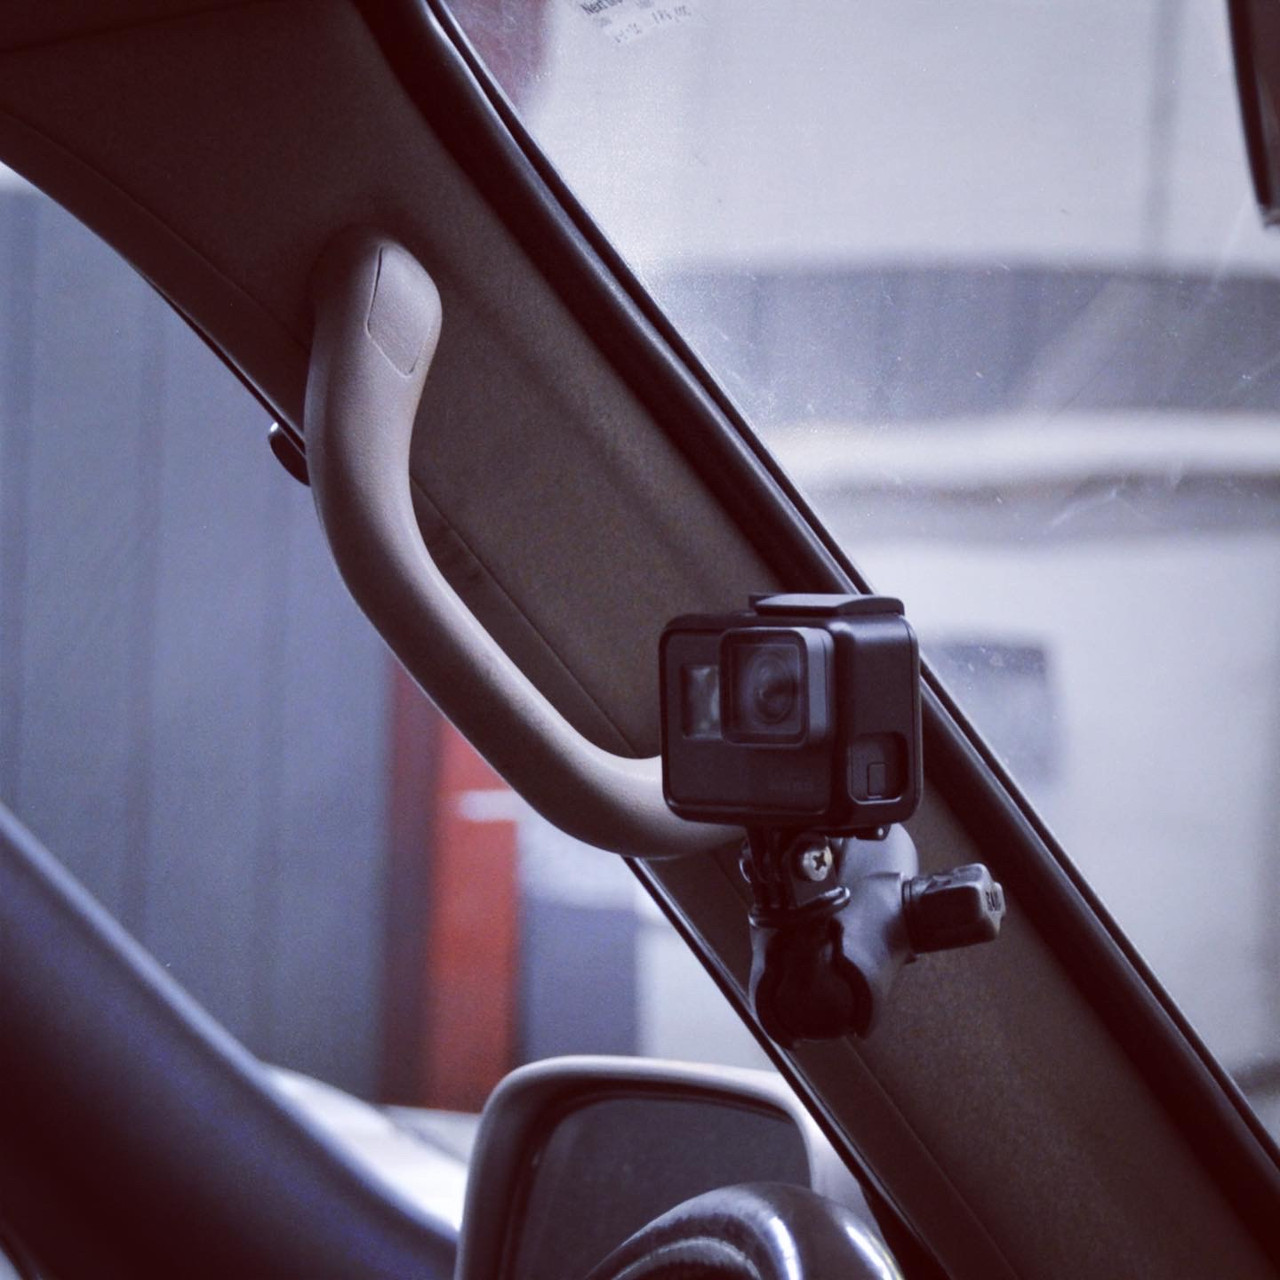 A-Pillar (Oh Sh!t Handle) Accessory Mount- 80 Series, Late (APM-1) fitting to a 97 Lexus LX450